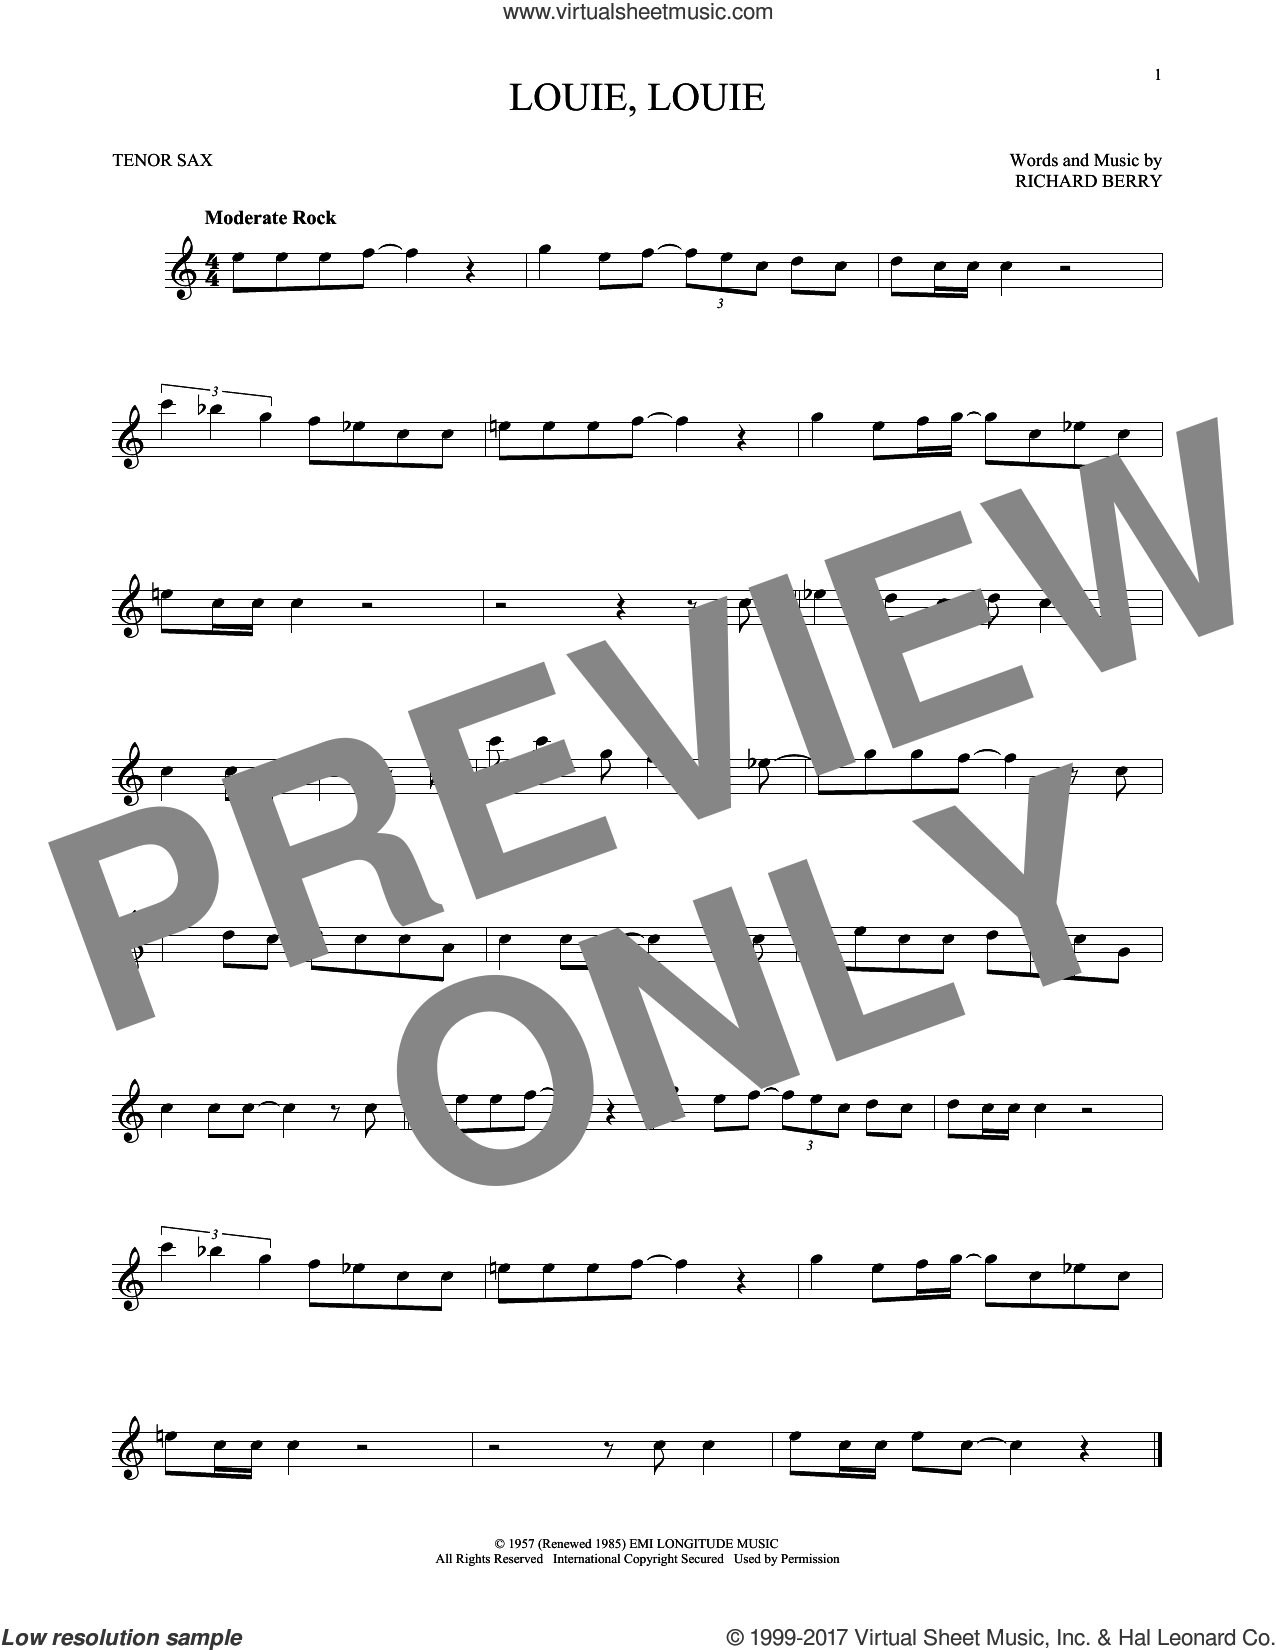 Louie, Louie sheet music for tenor saxophone solo by The Kingsmen and Richard Berry, intermediate skill level